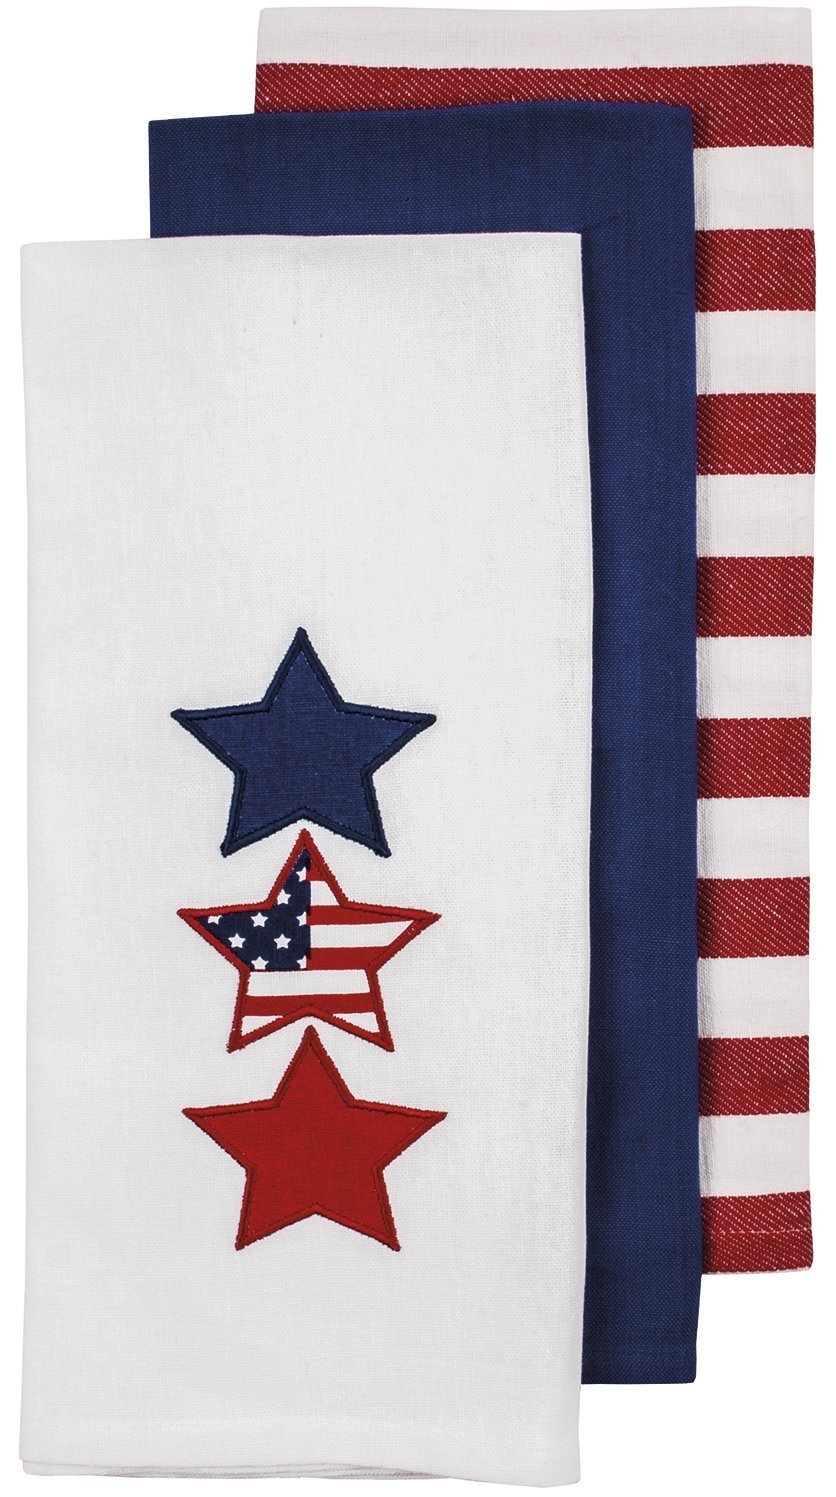 Ladelle Patriotic Kitchen Towel Set - One Each White with Star Applique, Solid Blue, Red & White Stripe